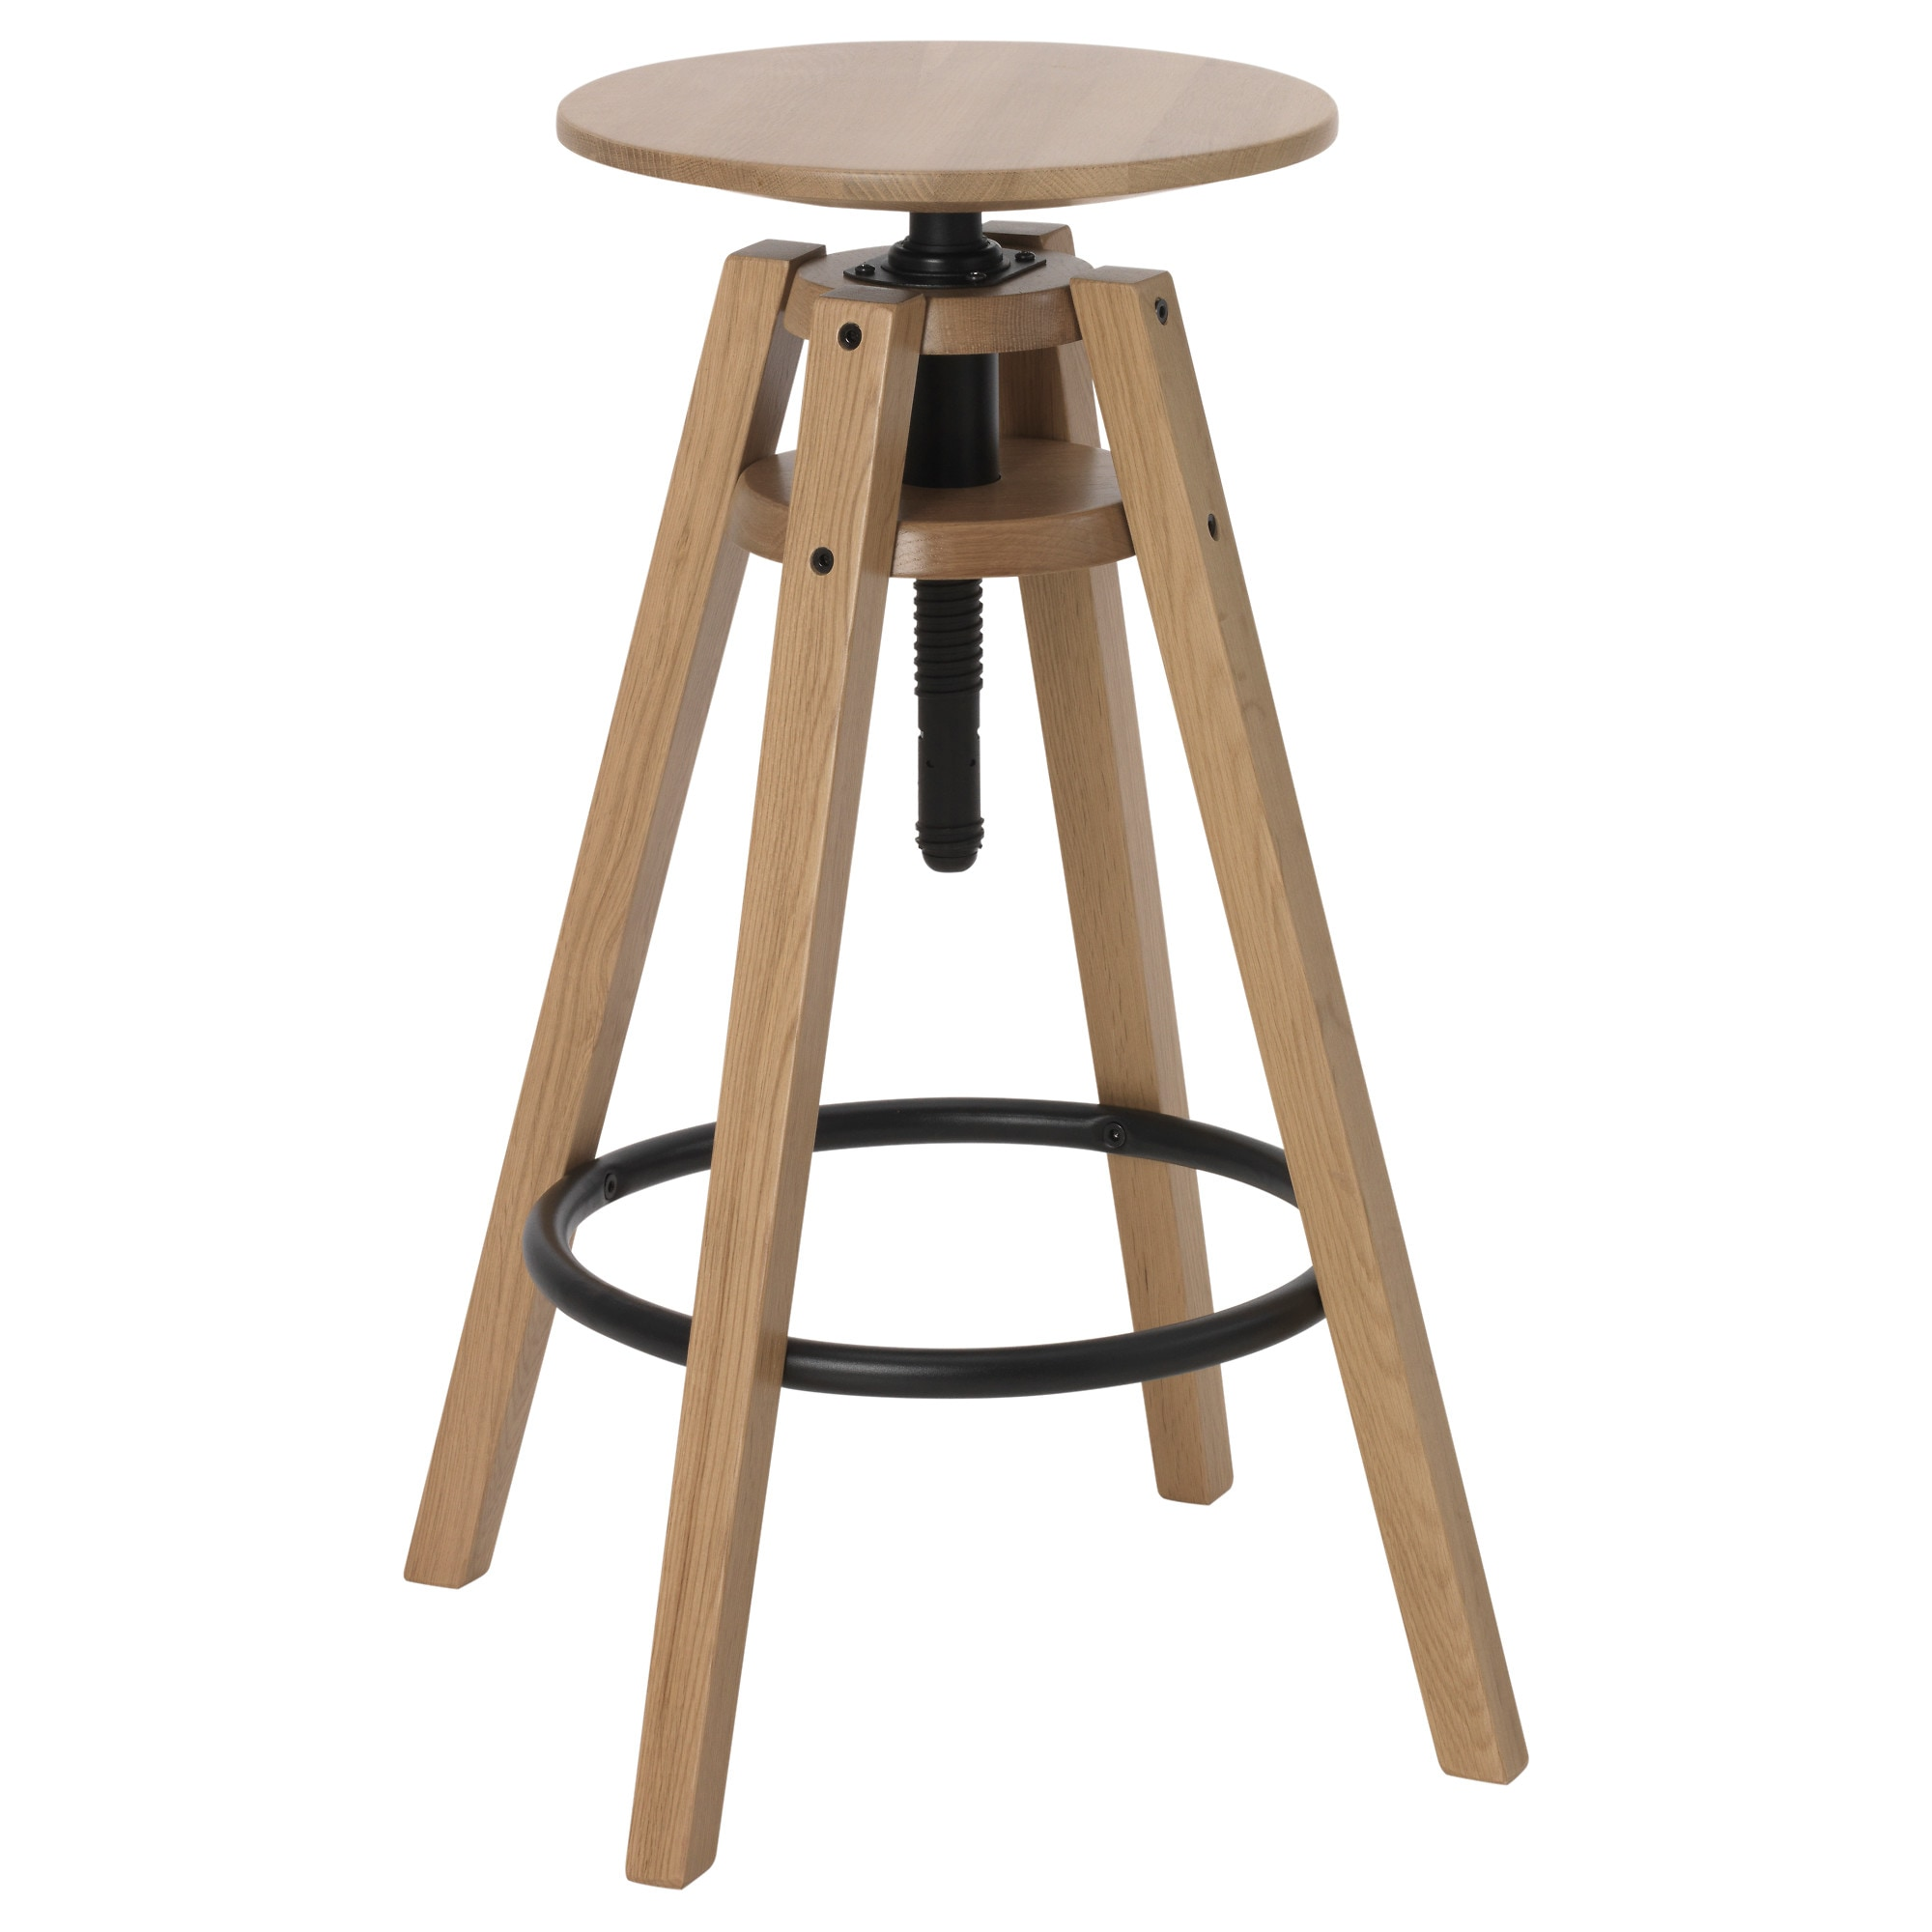 inter ikea systems bv privacy policy terms u0026 conditions notation based on the specified commercial transaction act rules for ikea - Ikea Bar Stools